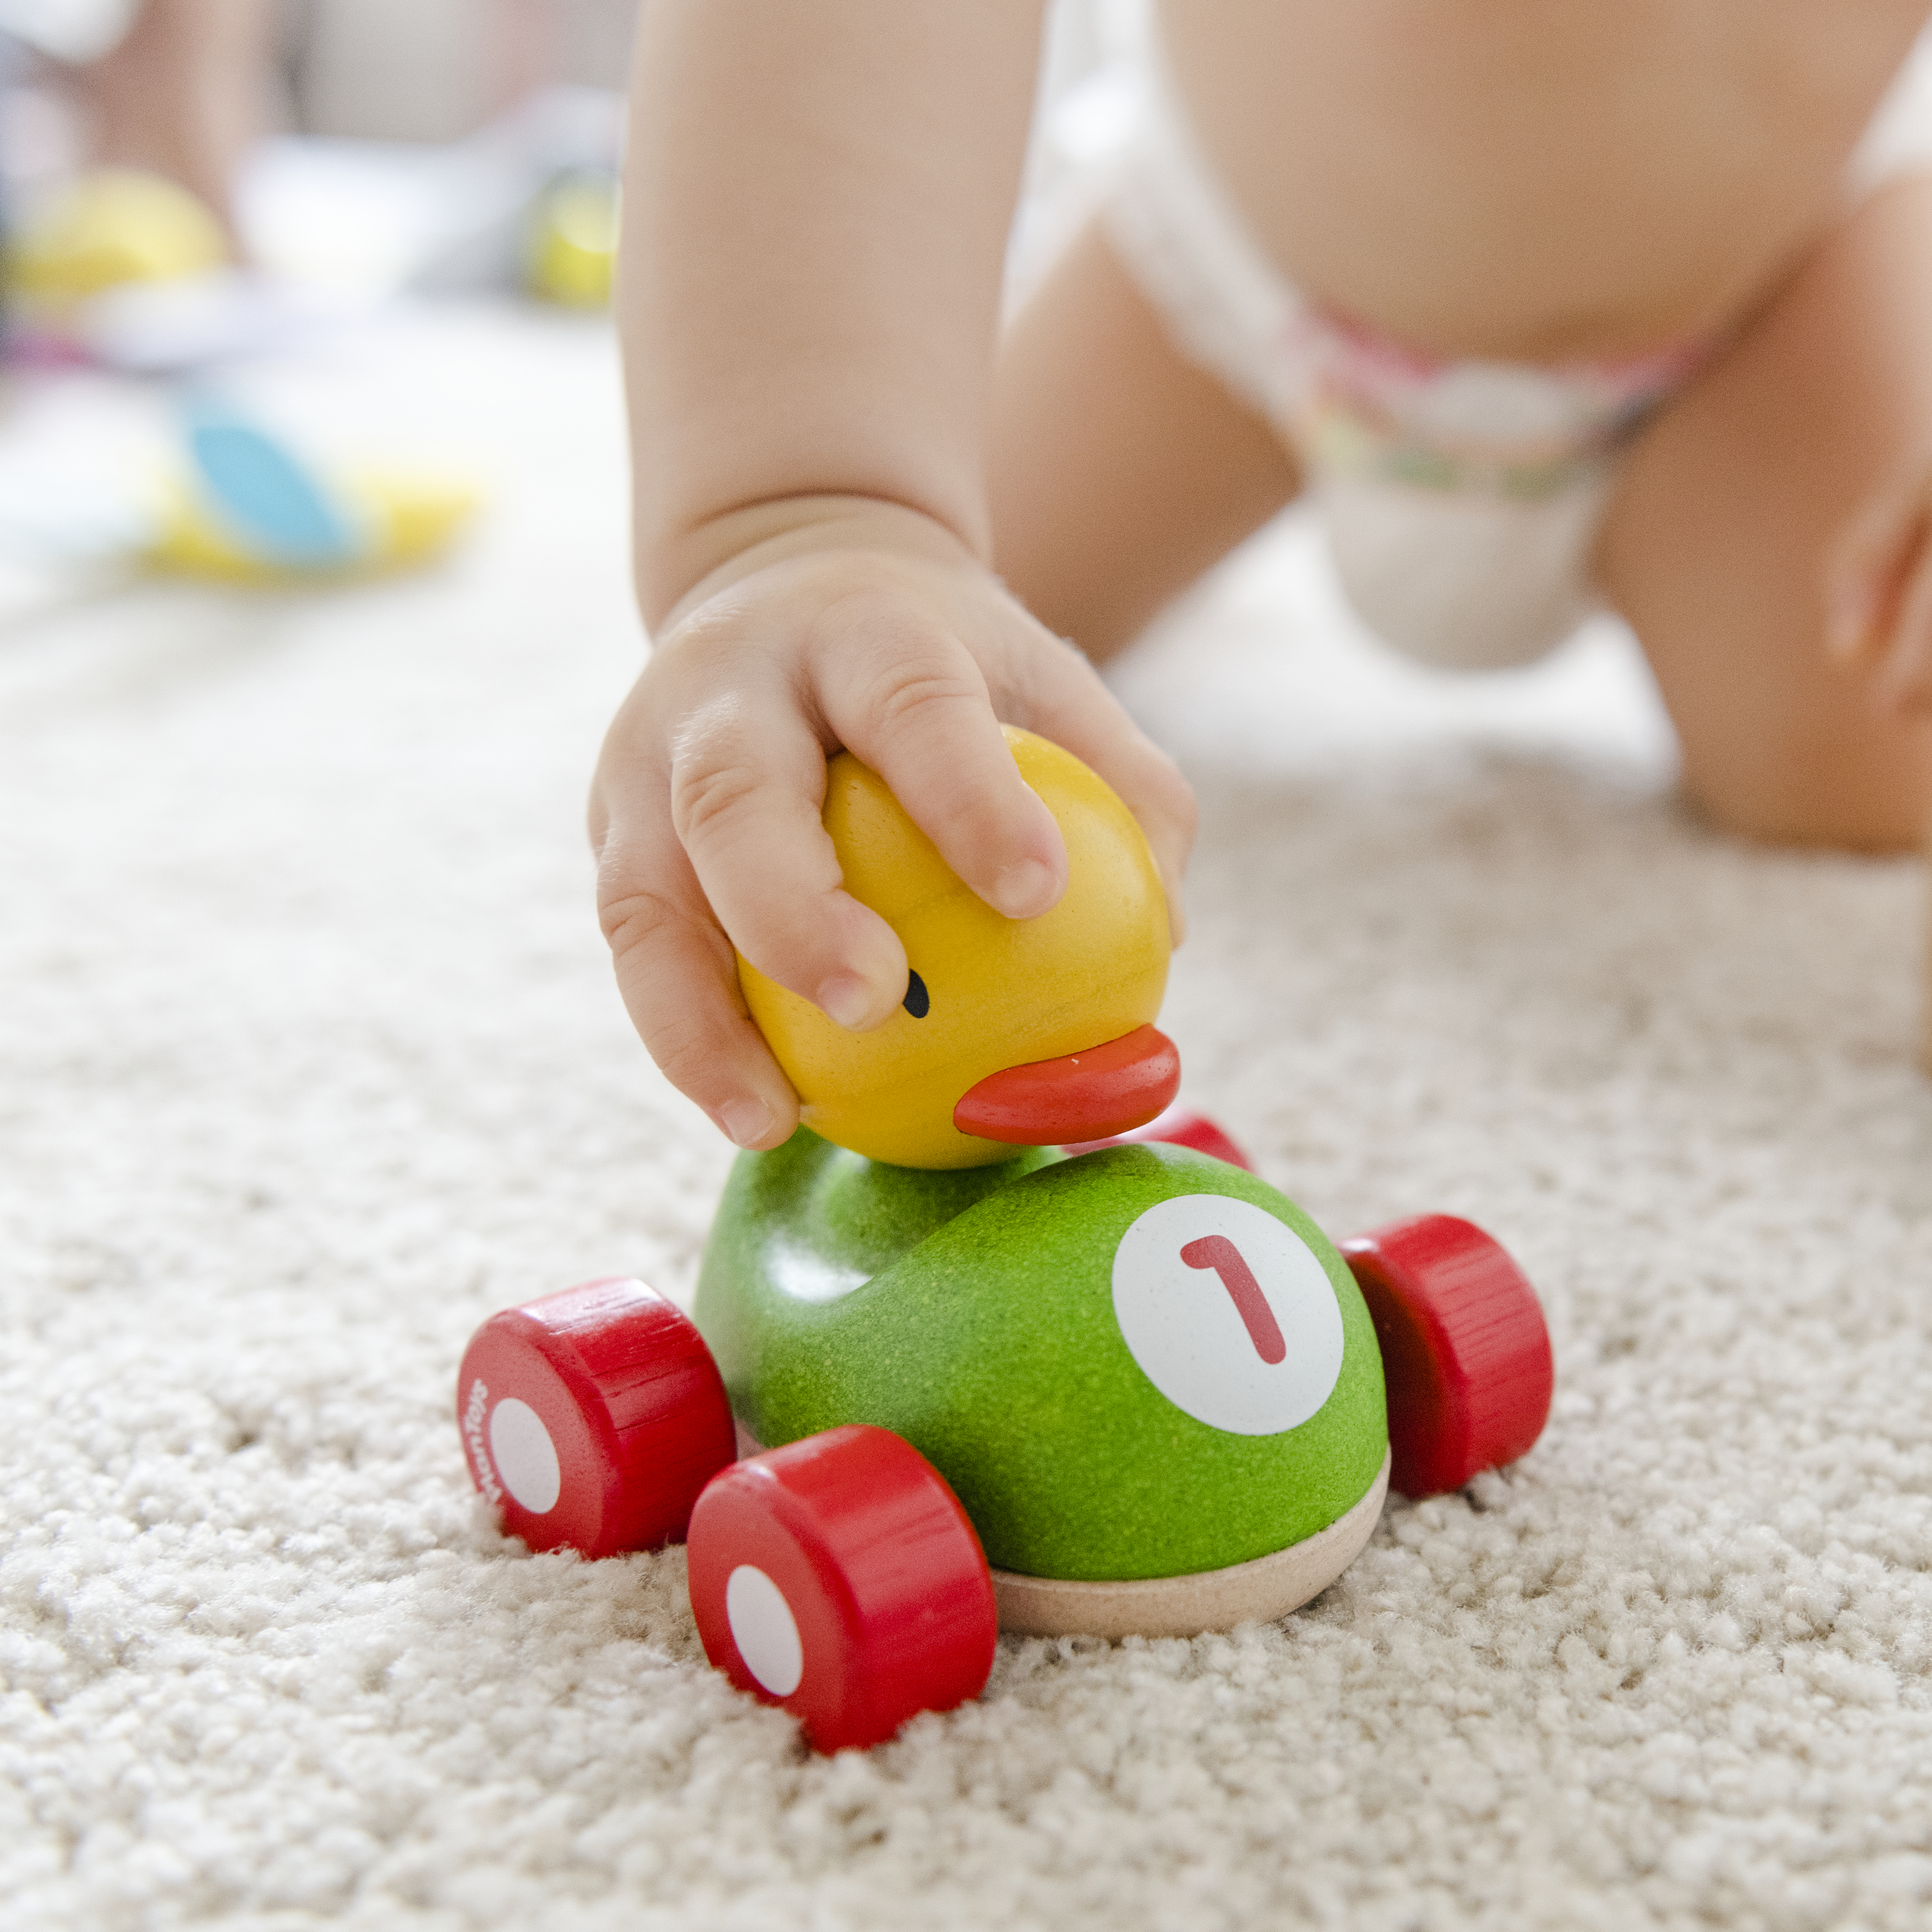 Baby playing with a wooden car